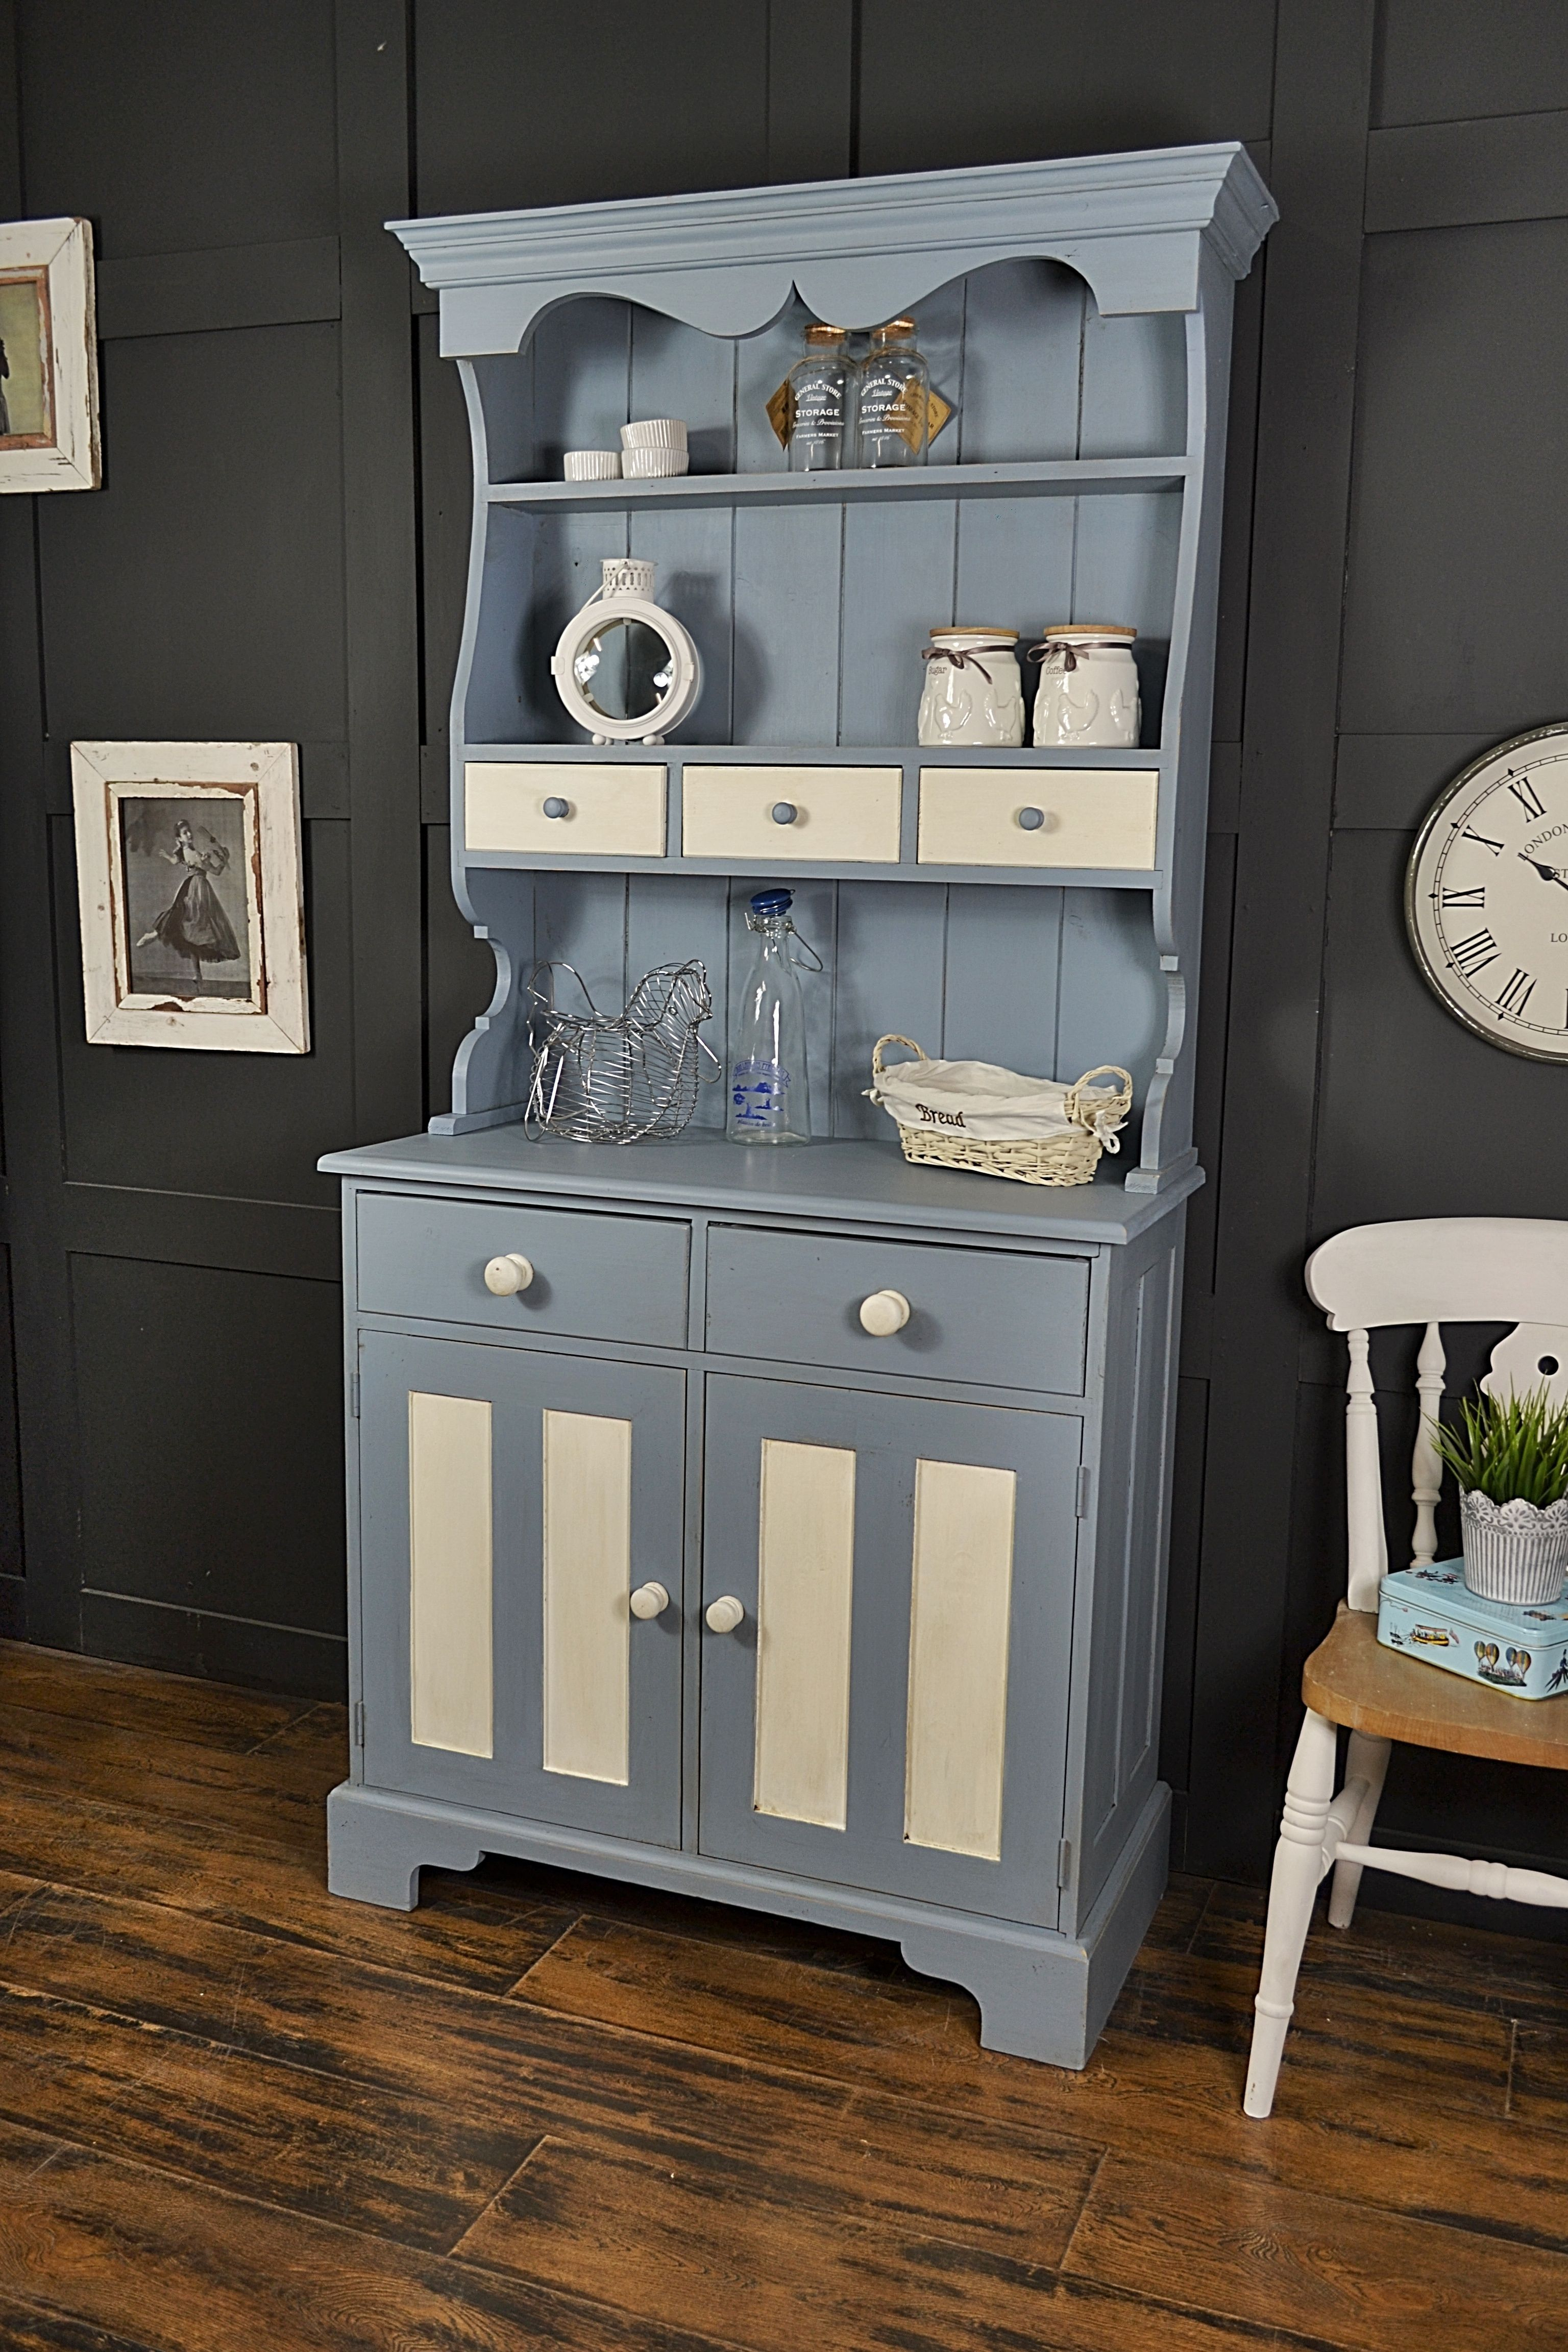 Why not grab some cheerful kitchen storage with this delightful